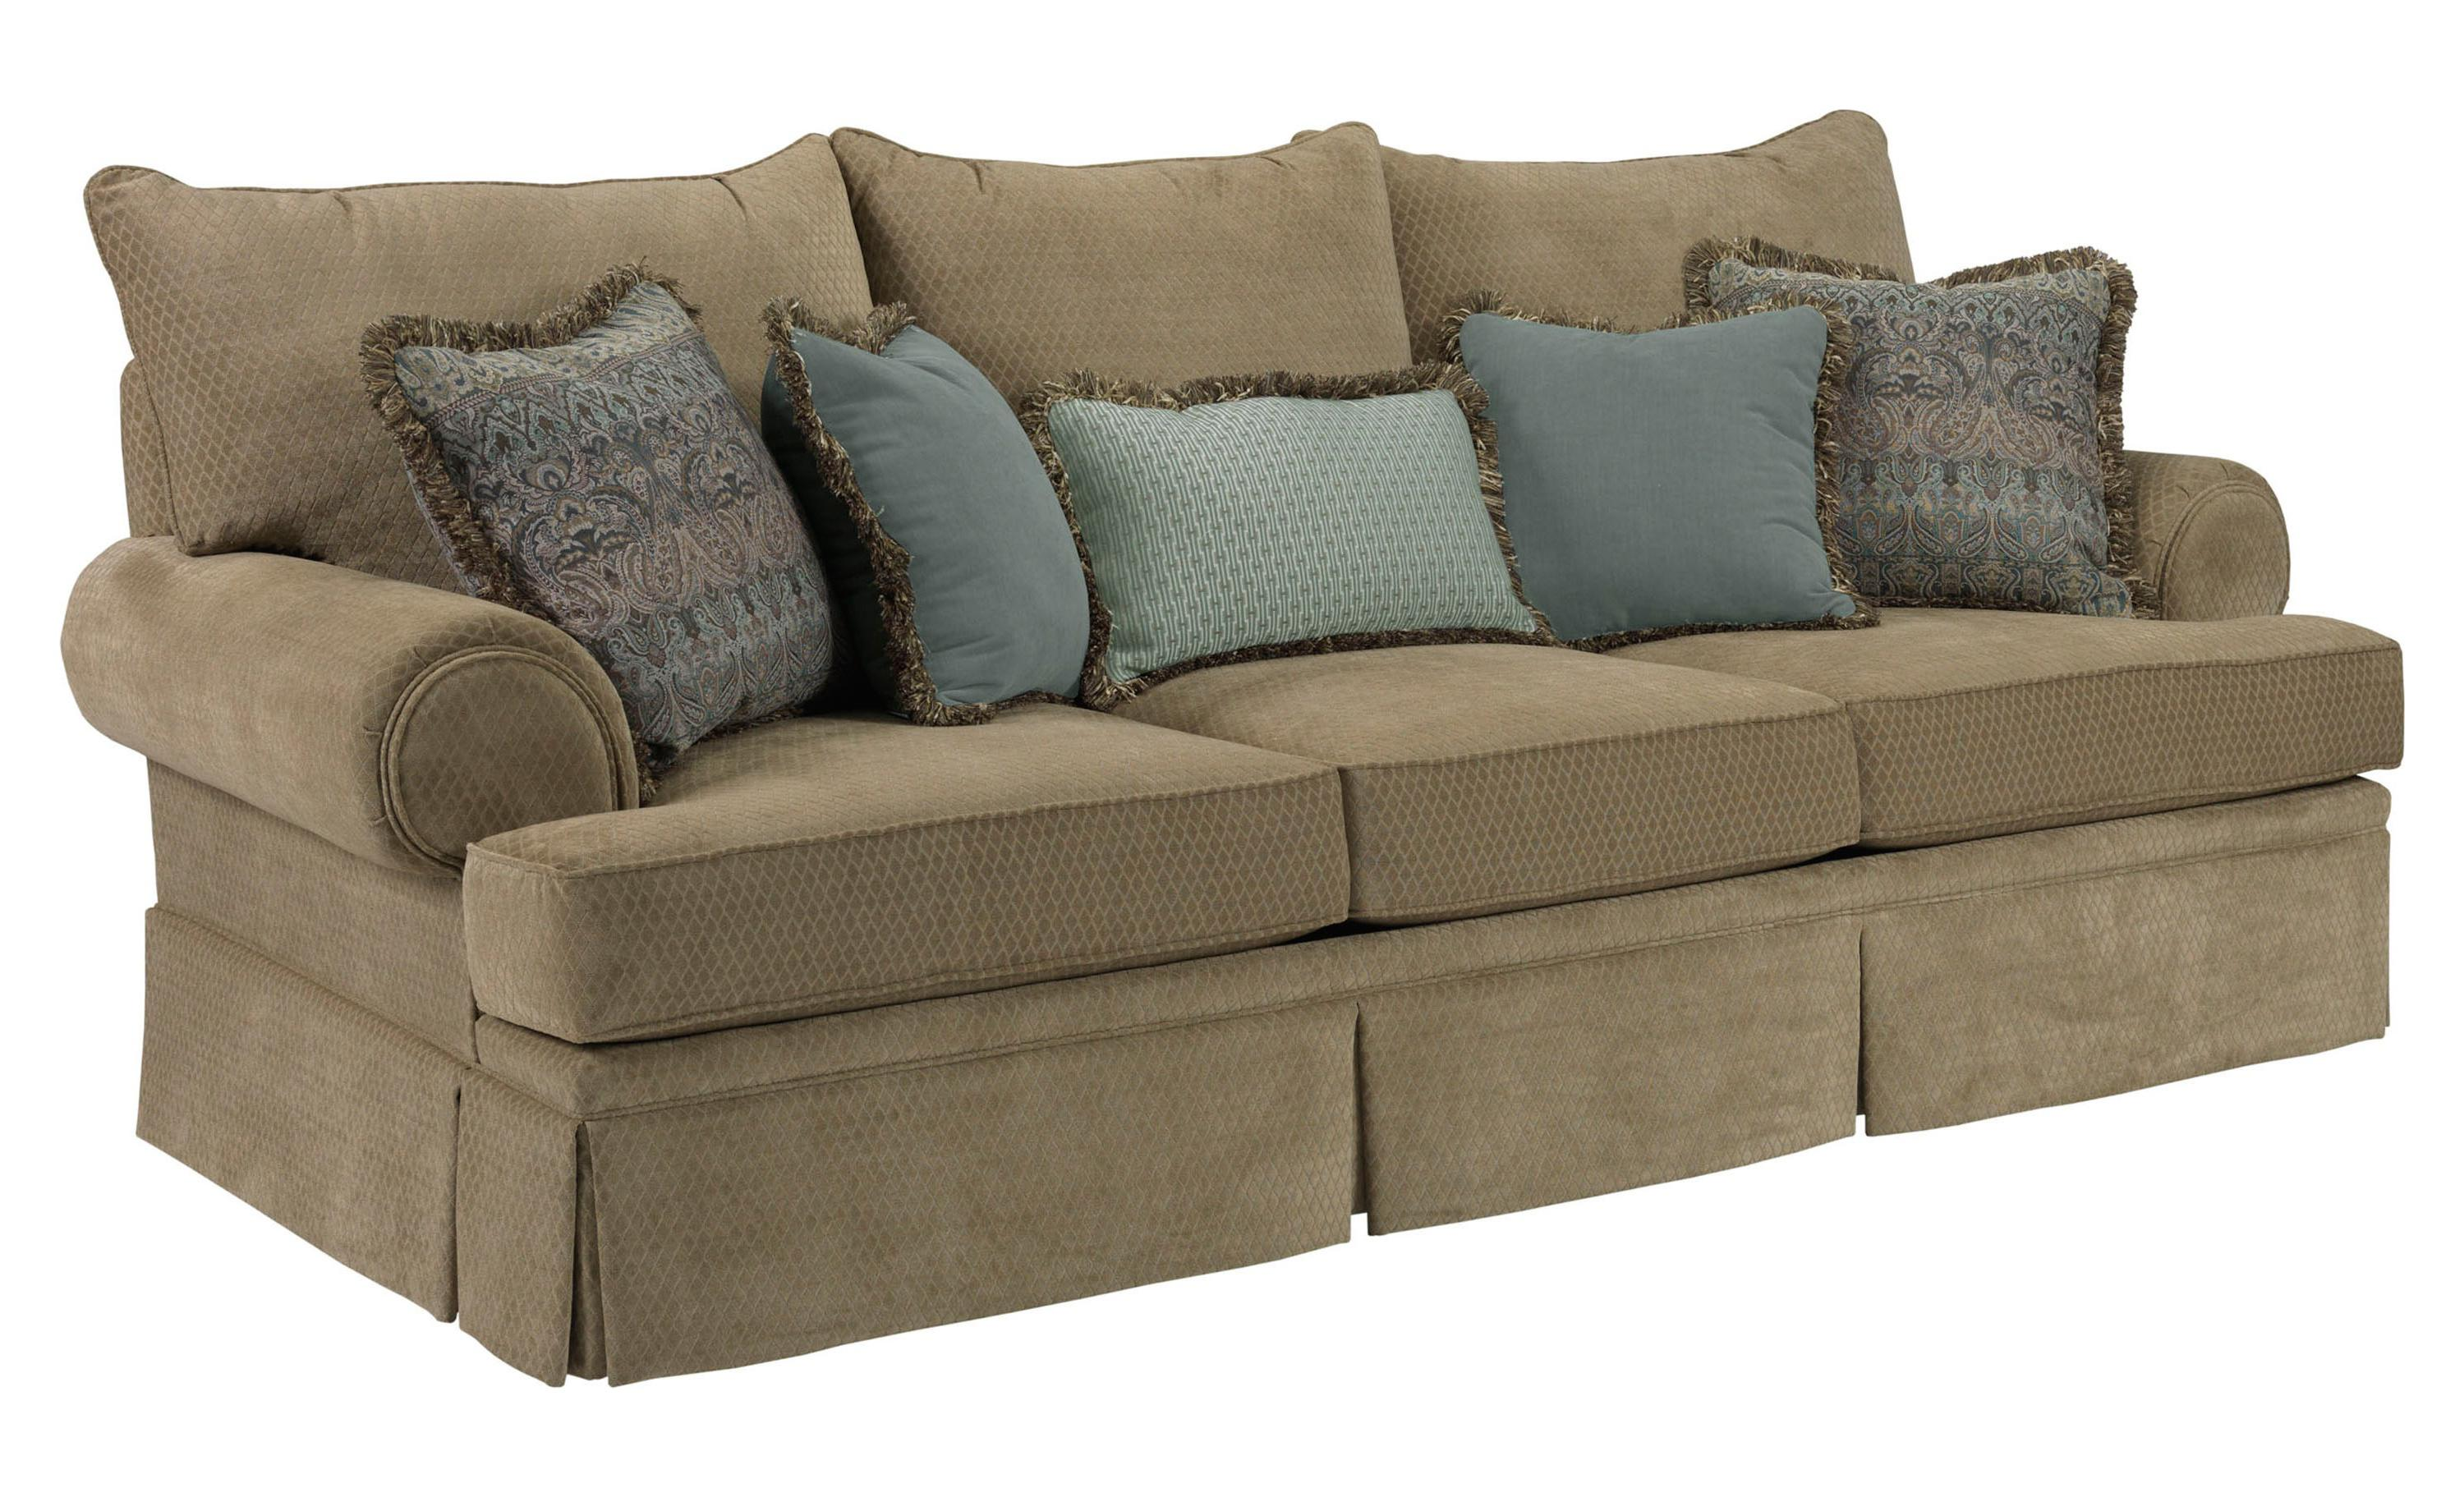 Helena Traditional Skirted Sofa With Rolled Arms By Broyhill Furniture